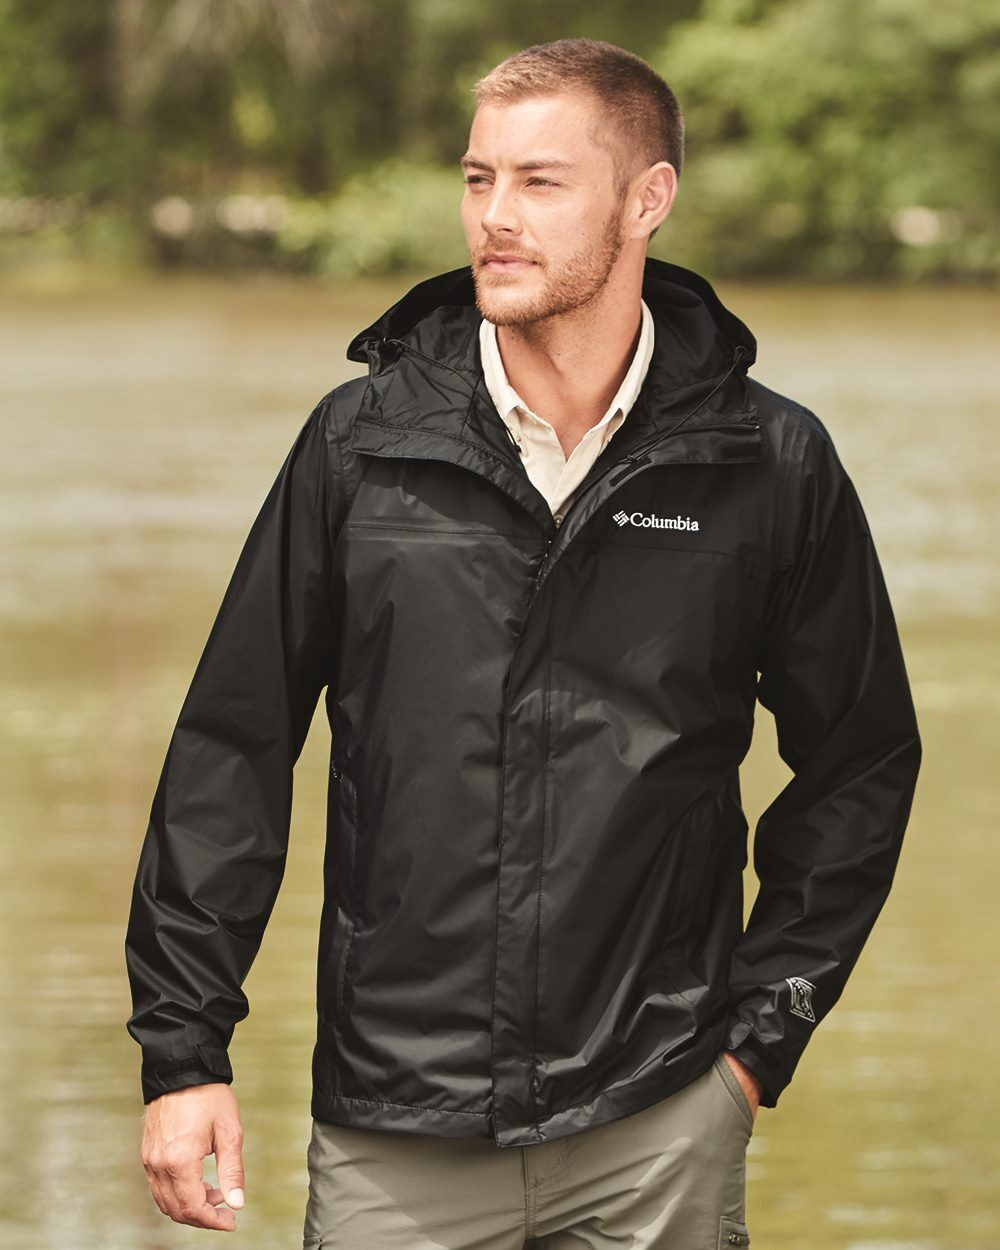 Columbia 153389 - Men's Watertight II Full-Zip Rain Jacket